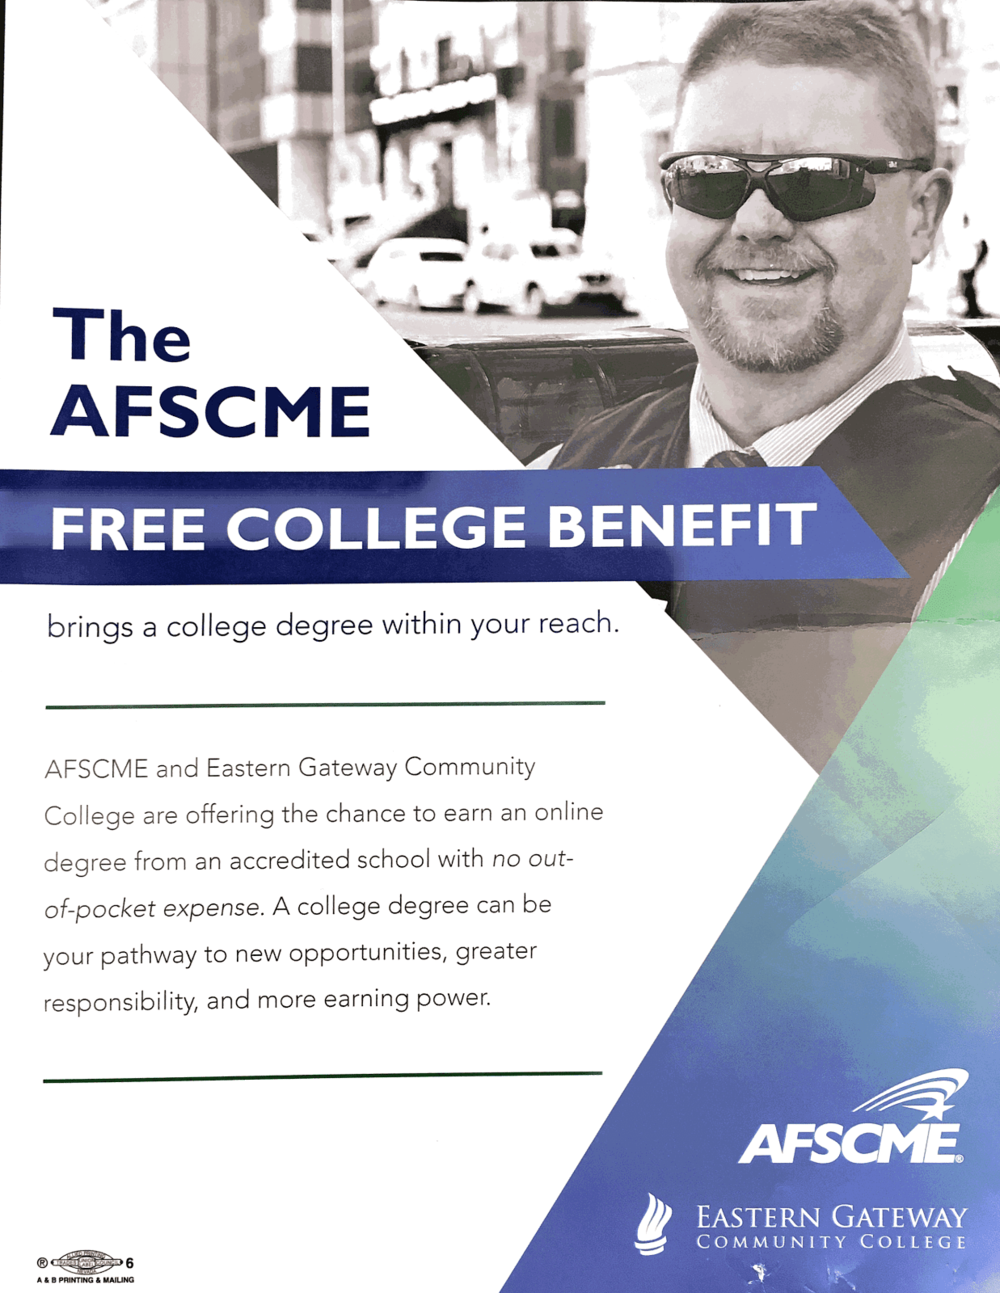 AFSCME free college flyer1.PNG